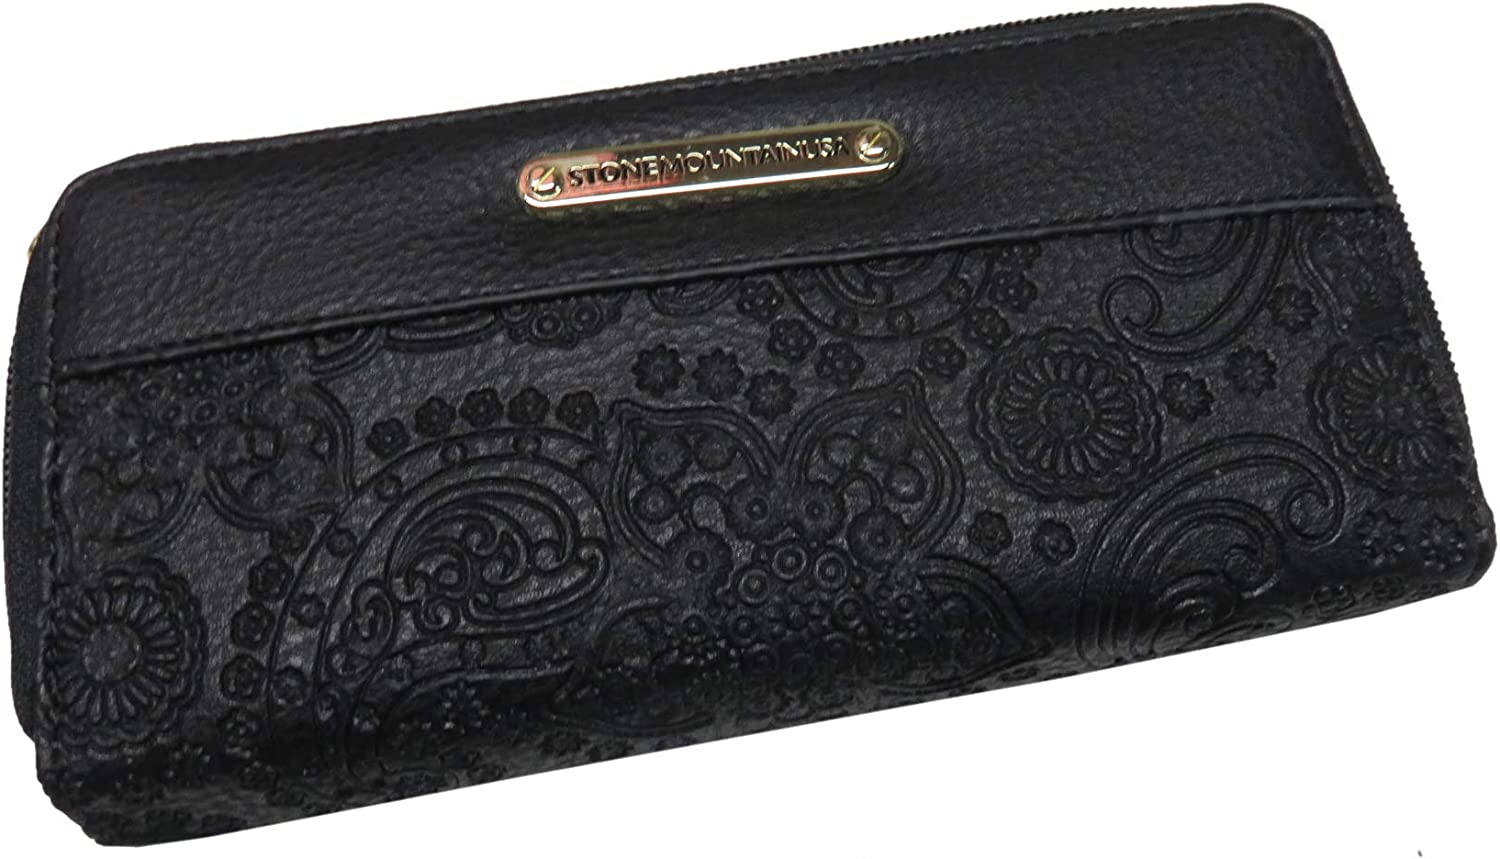 Some Max 84% OFF reservation Stone Mountain Wallet